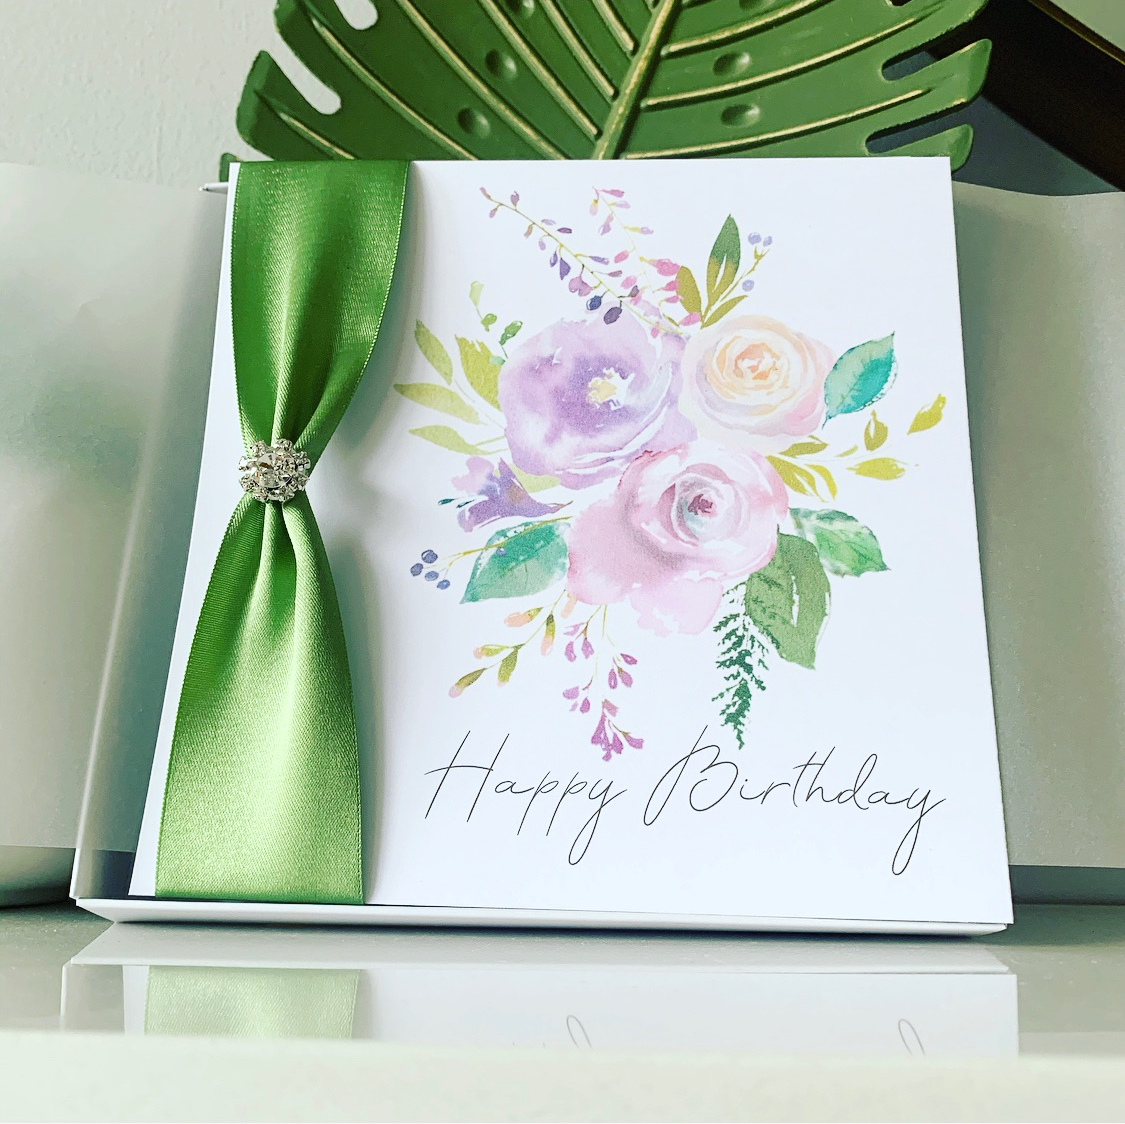 Special Birthday luxury boxed cards